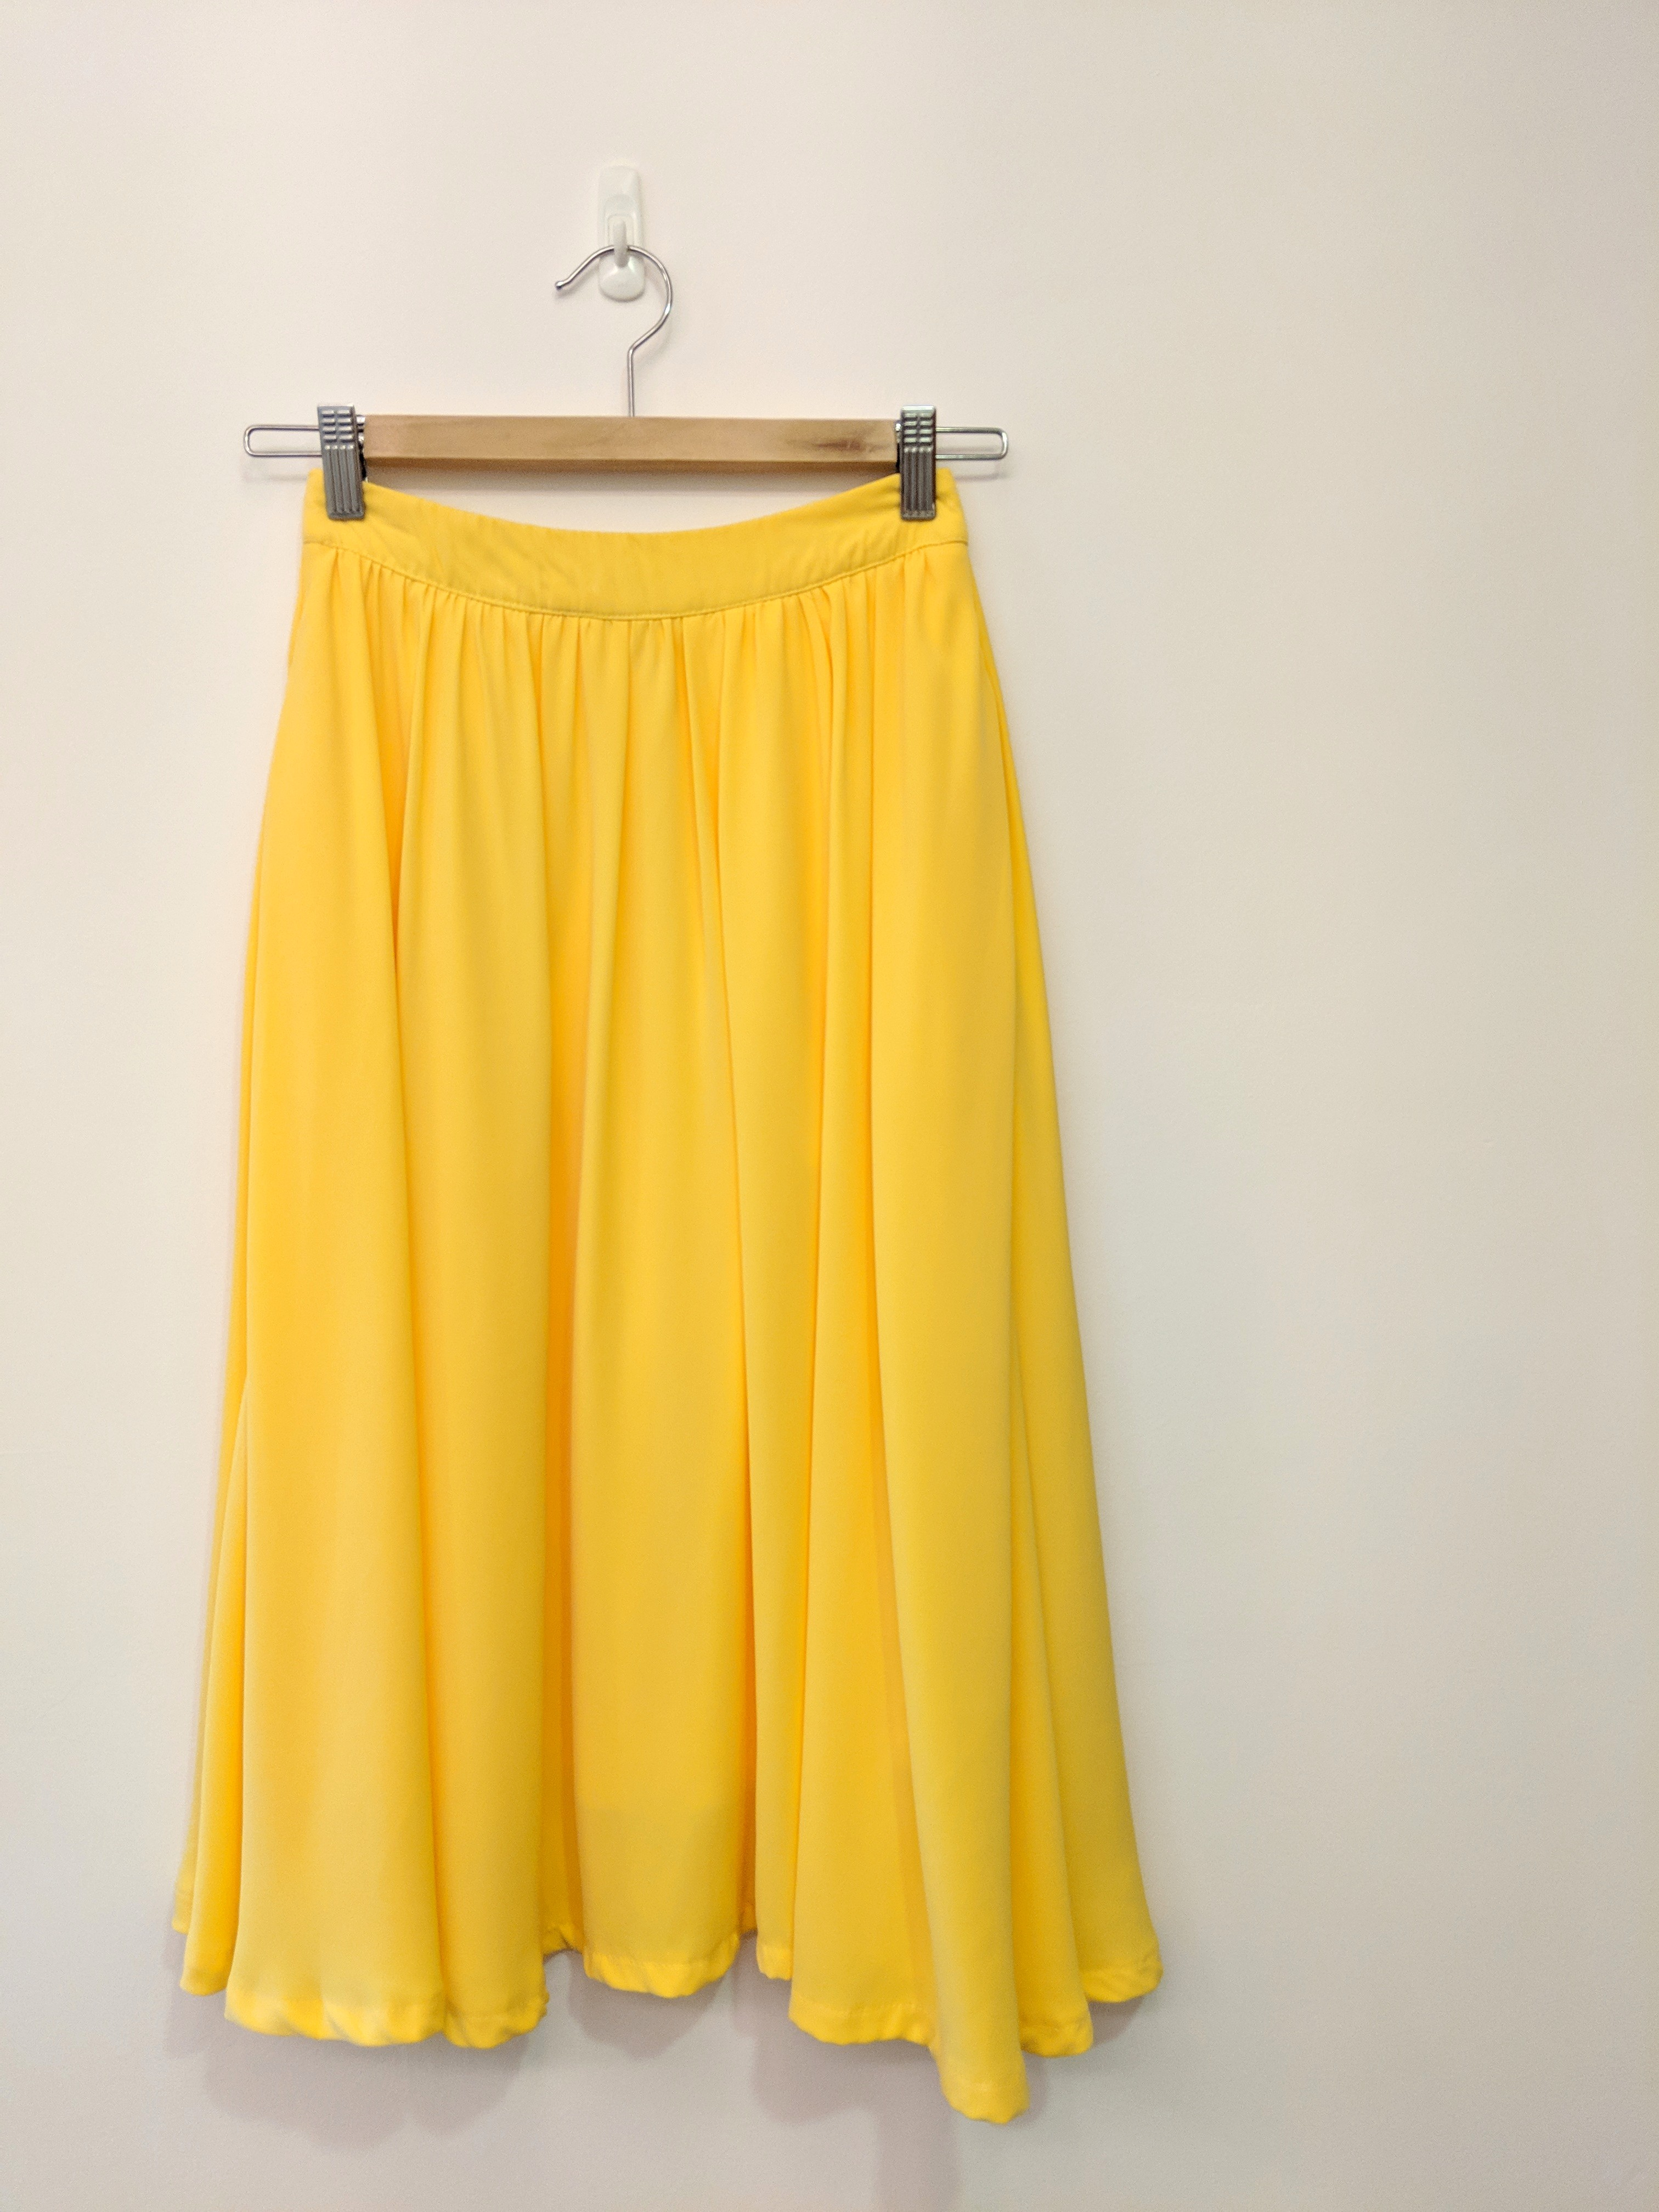 e10bb86013 [The Tinsel Rack] Yellow Midi Skirt, Women's Fashion, Clothes, Dresses &  Skirts on Carousell